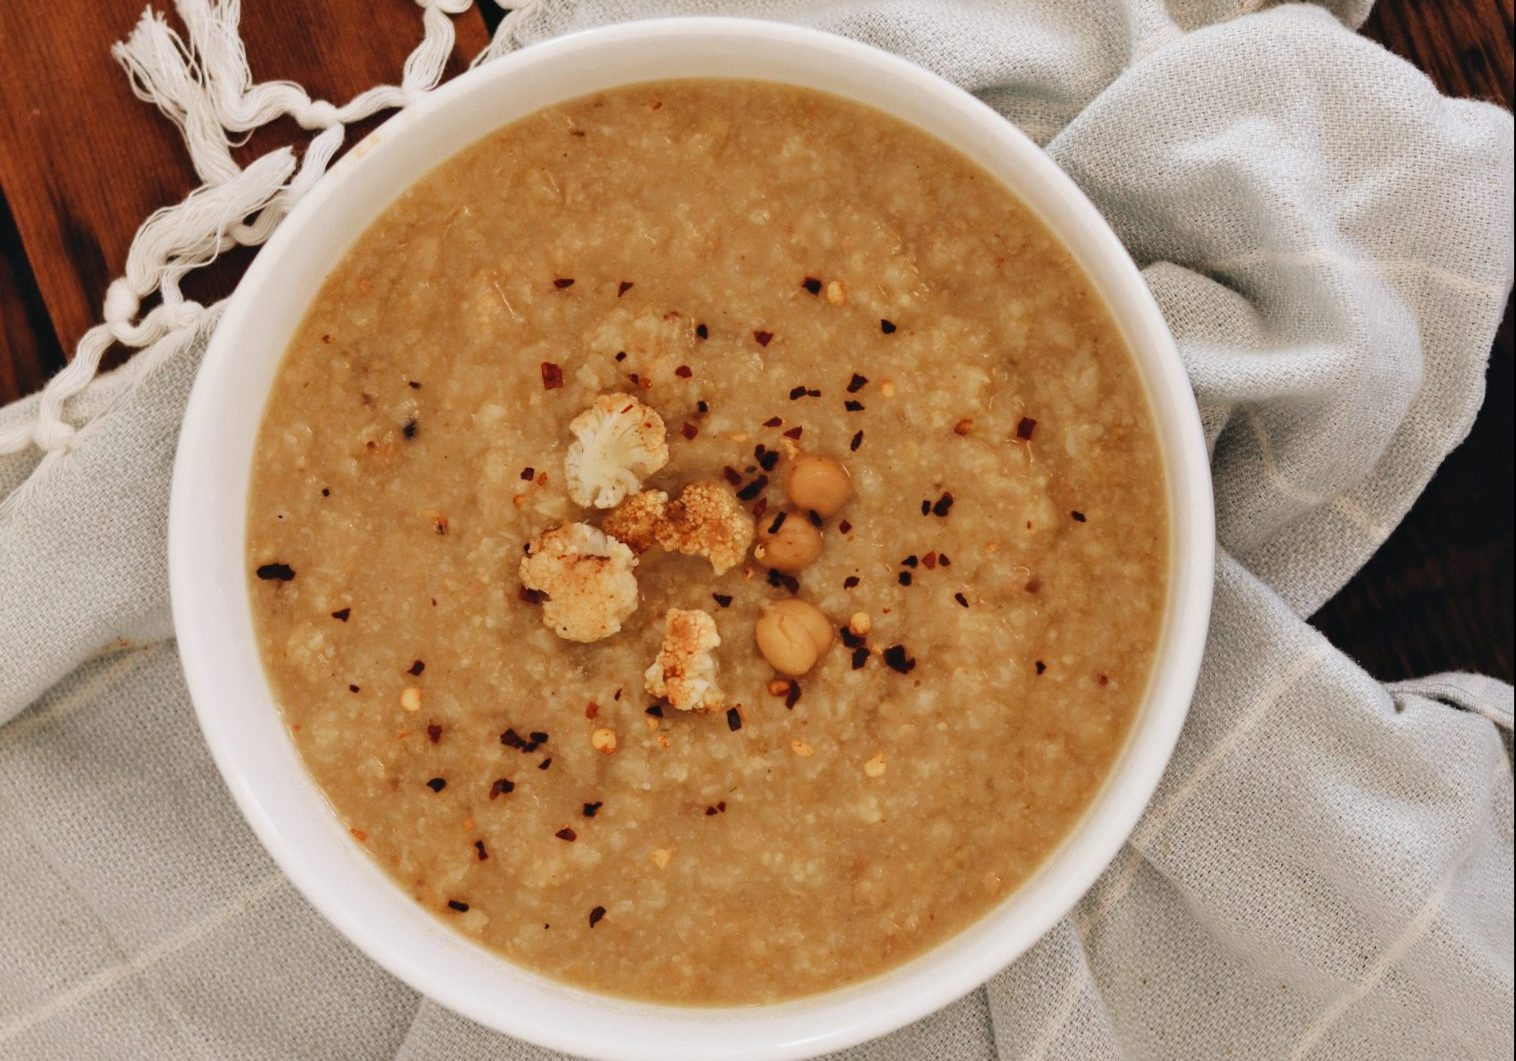 Chickpea and cauliflower soup